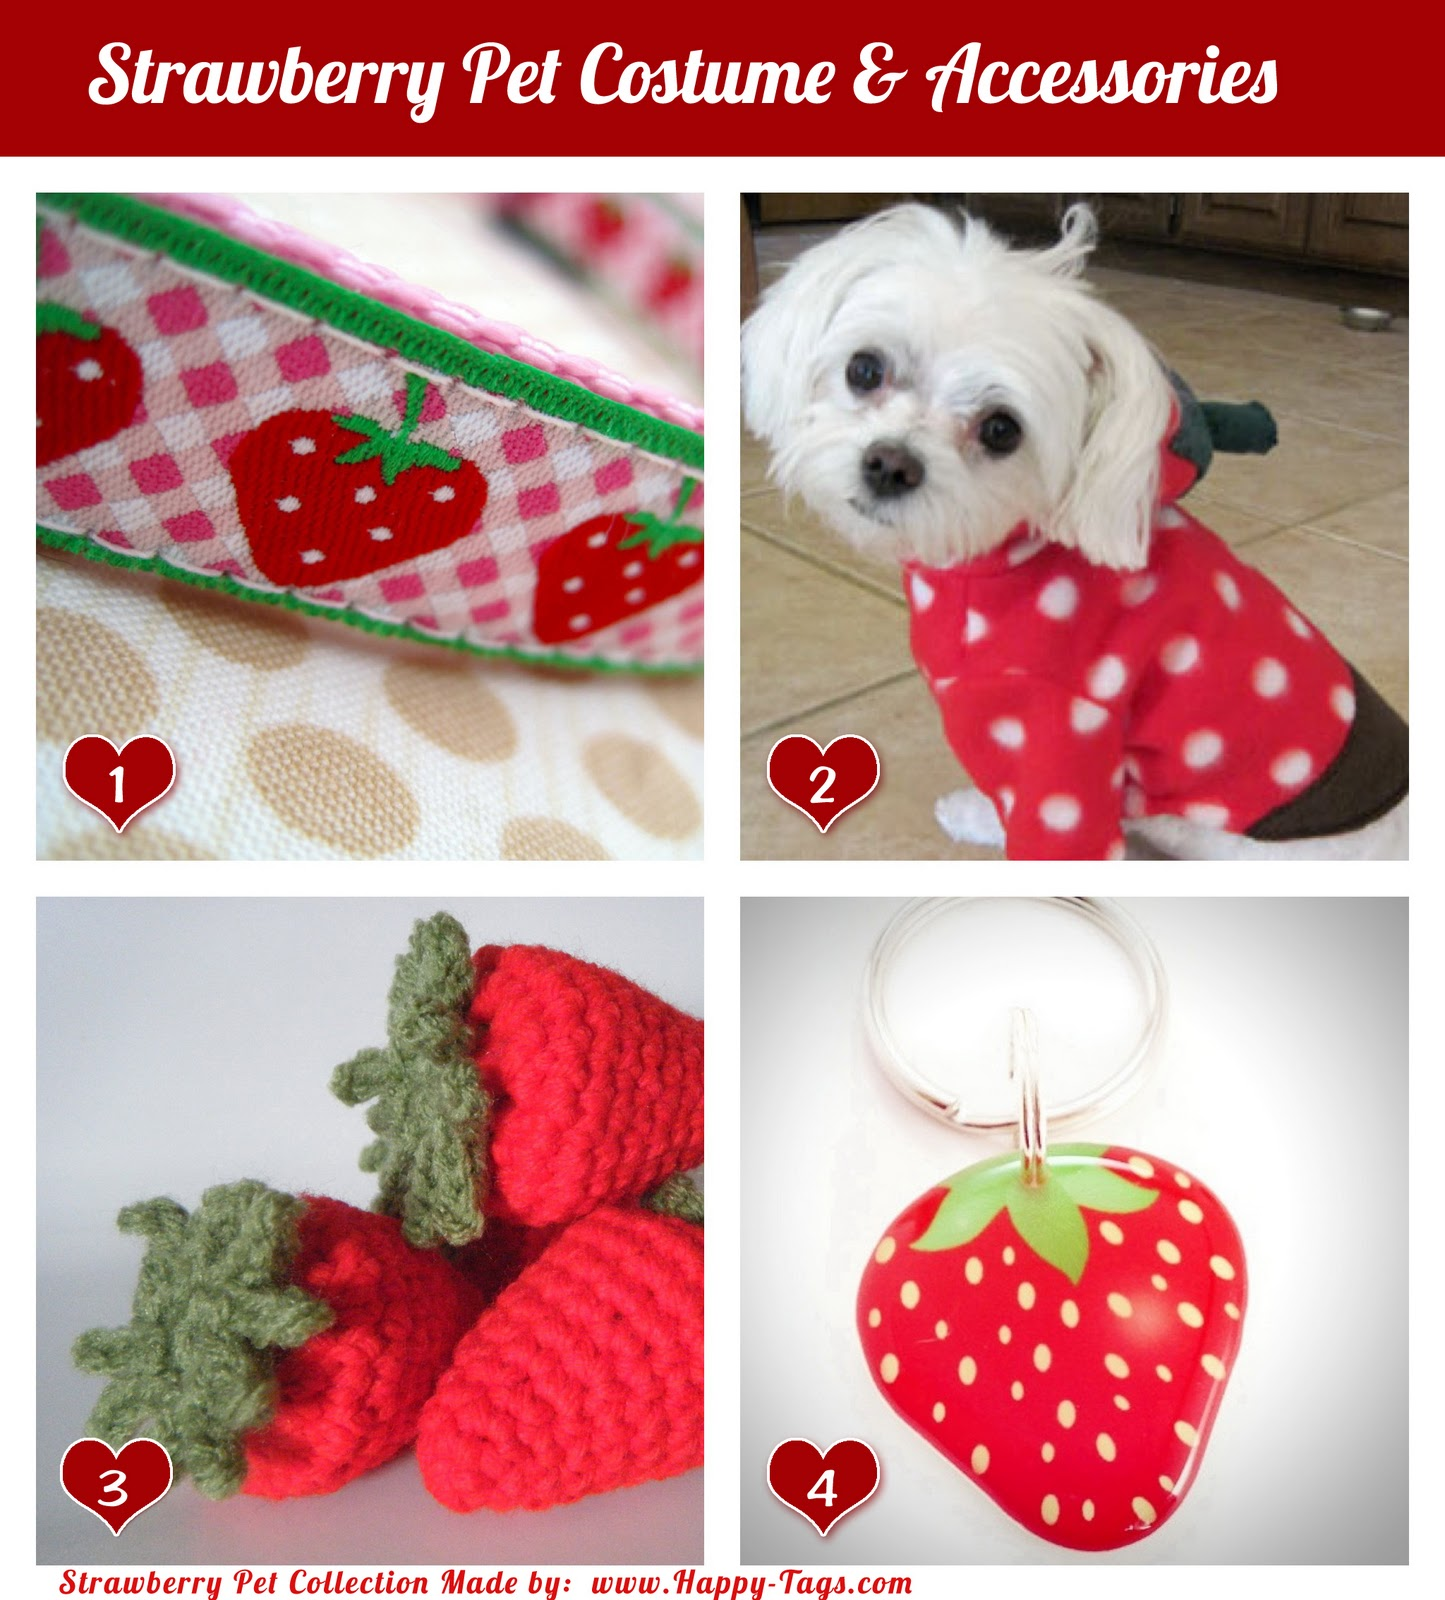 Strawberry Pet Costume & Accessories ~ Happy Tags Blog